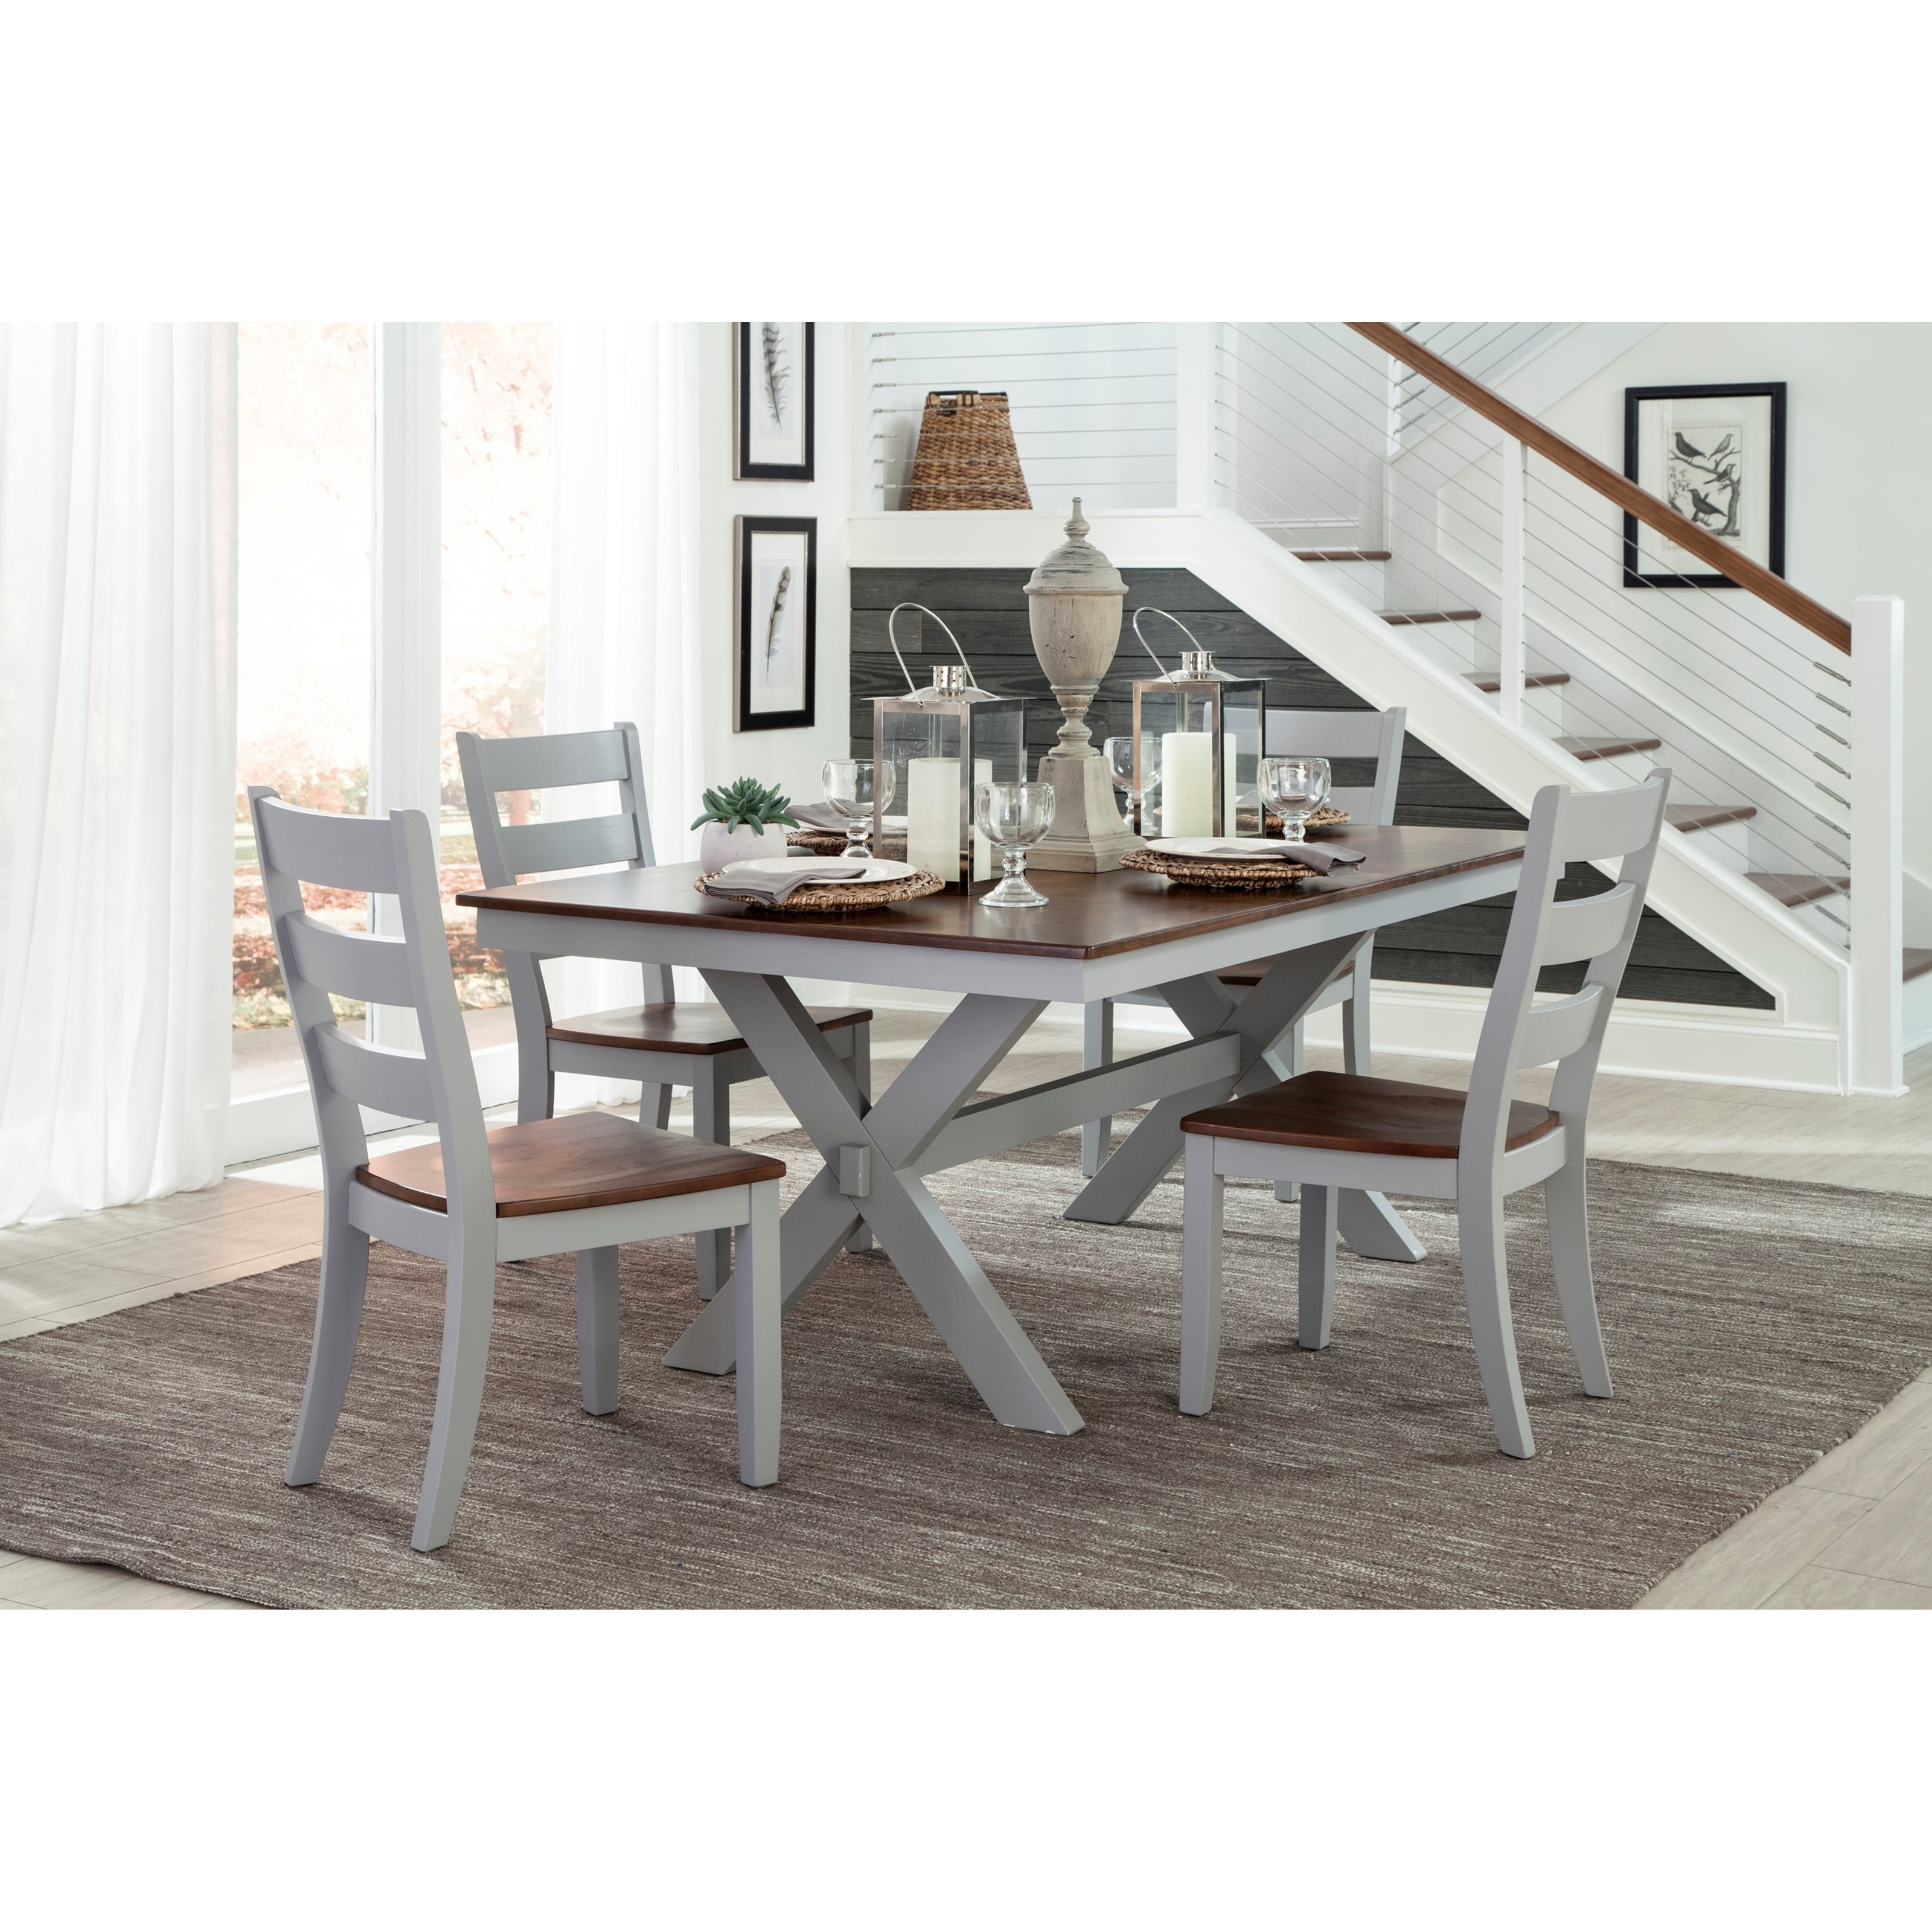 Intercon small space 5 piece trestle table and ladder back chair set hudson 39 s furniture - Piece dining set small spaces plan ...